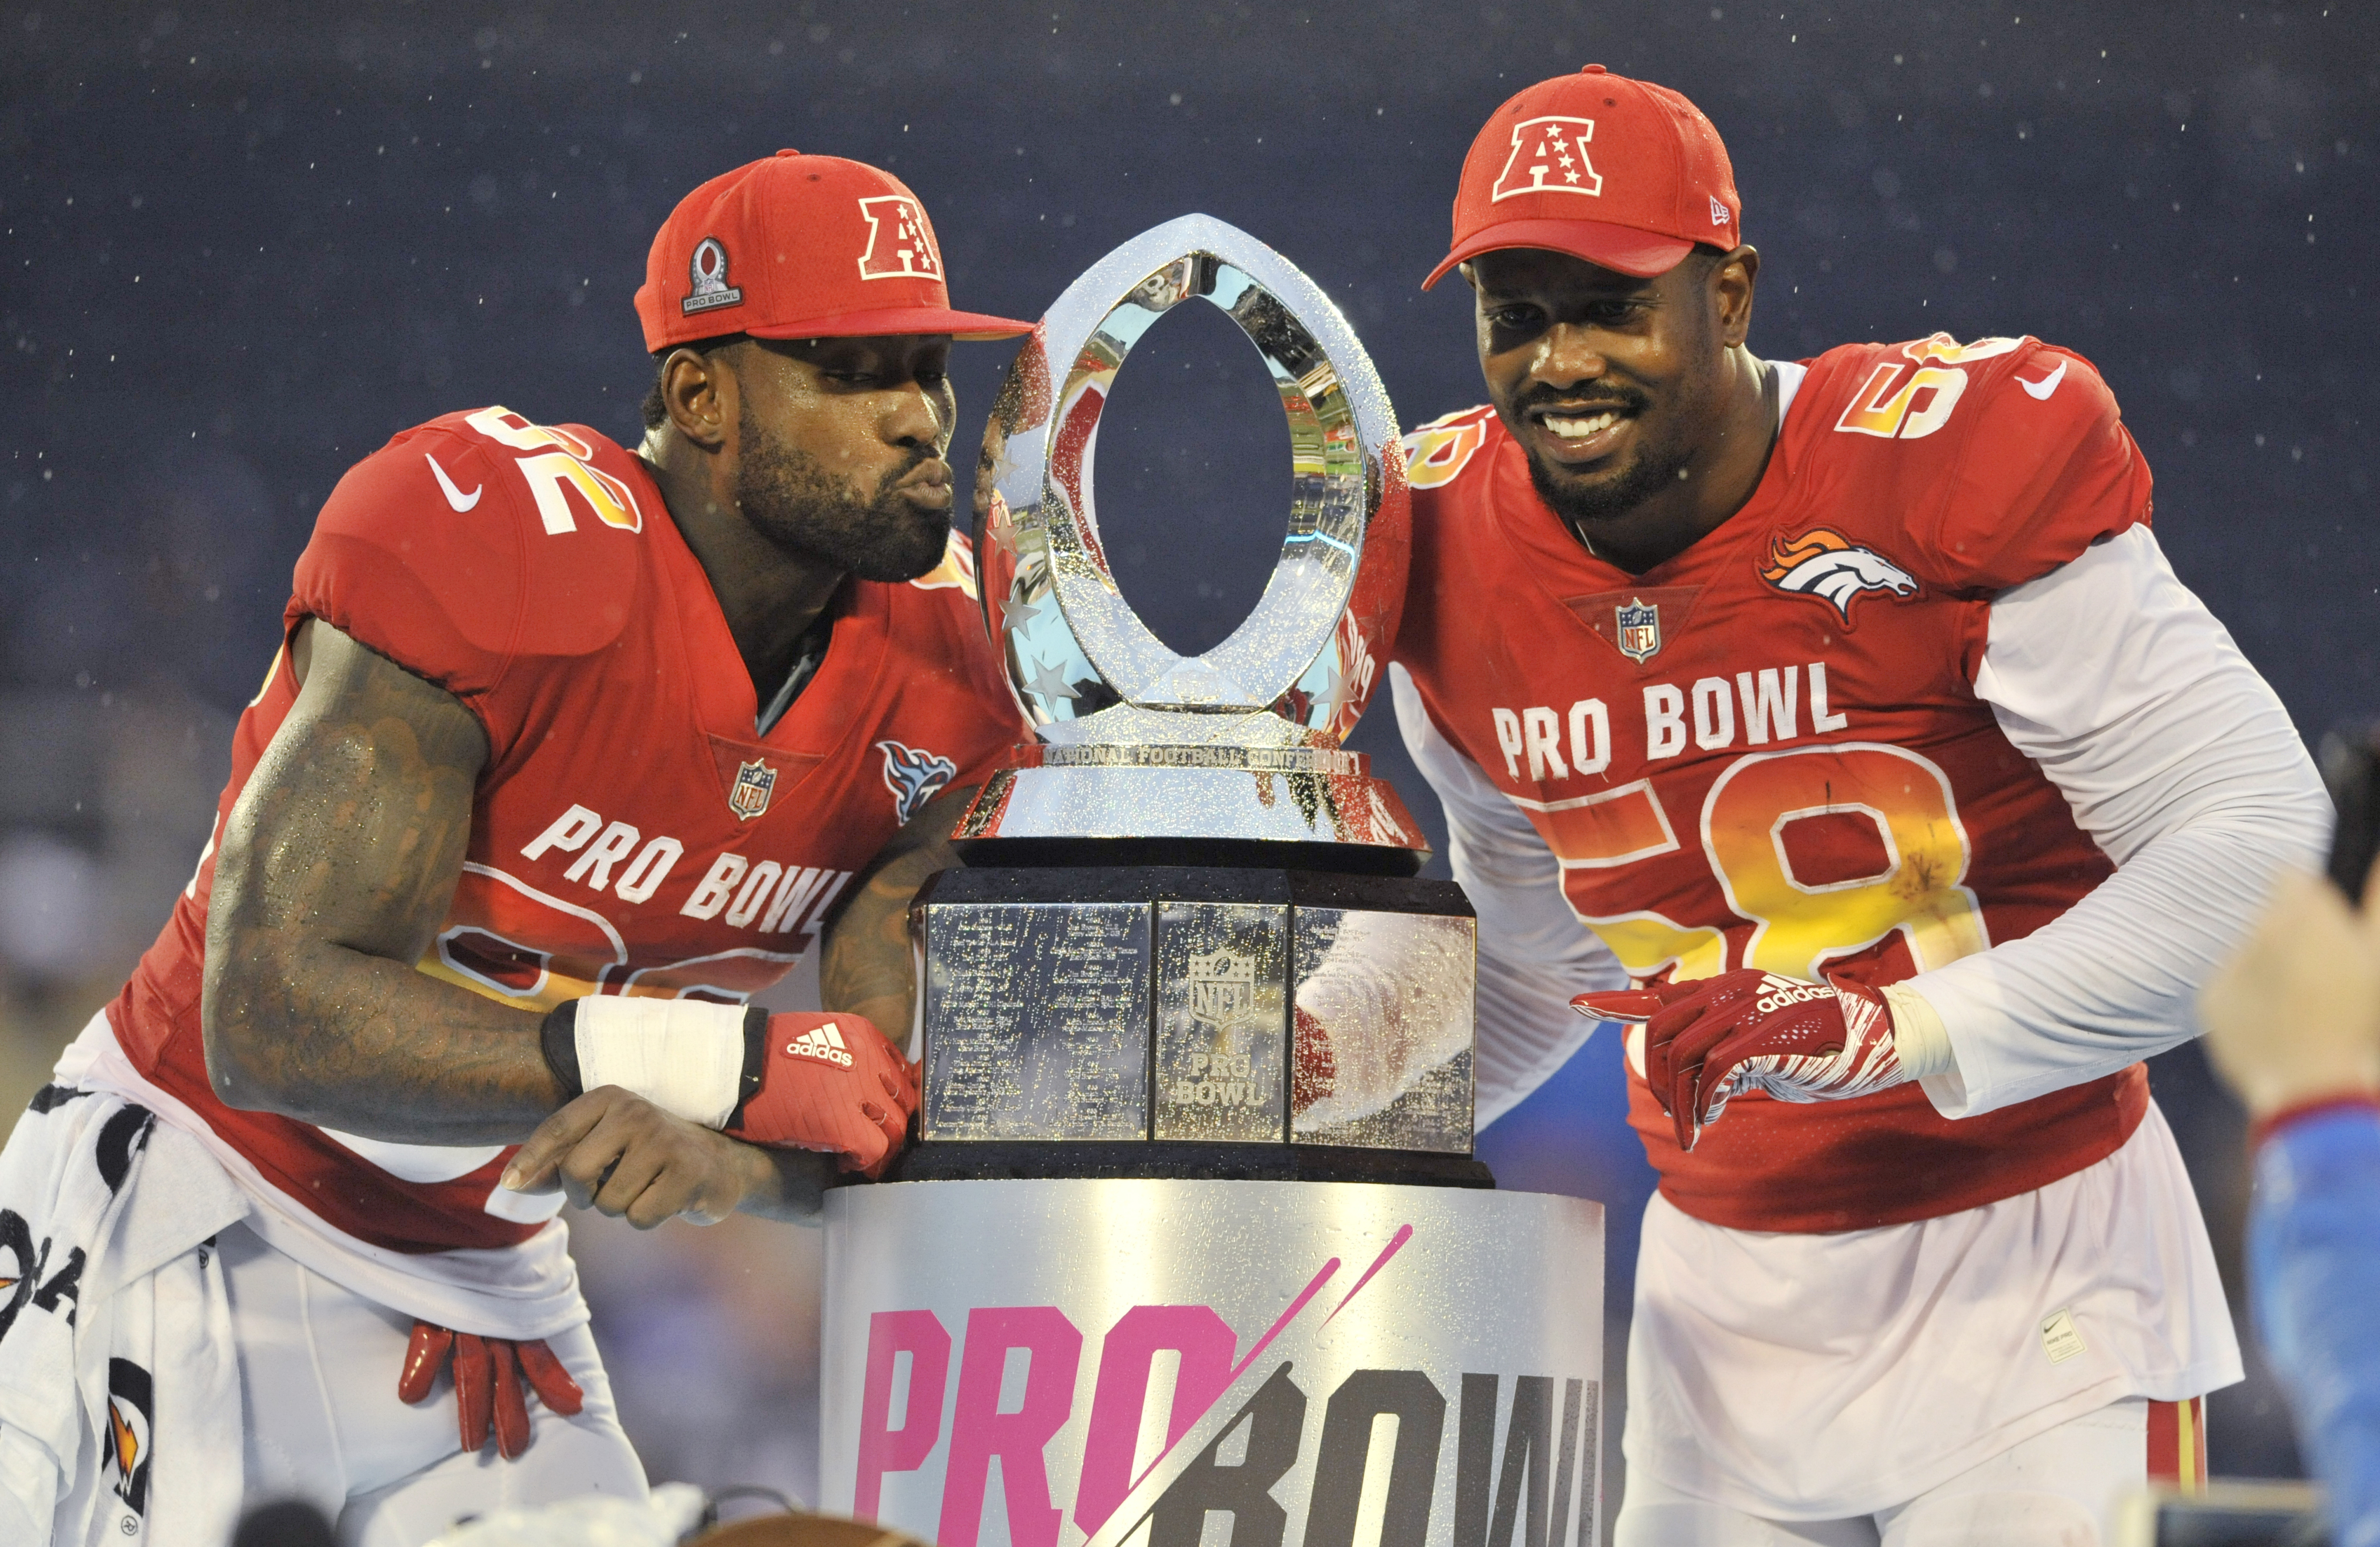 AFC defeats NFC in Pro Bowl, 24-23